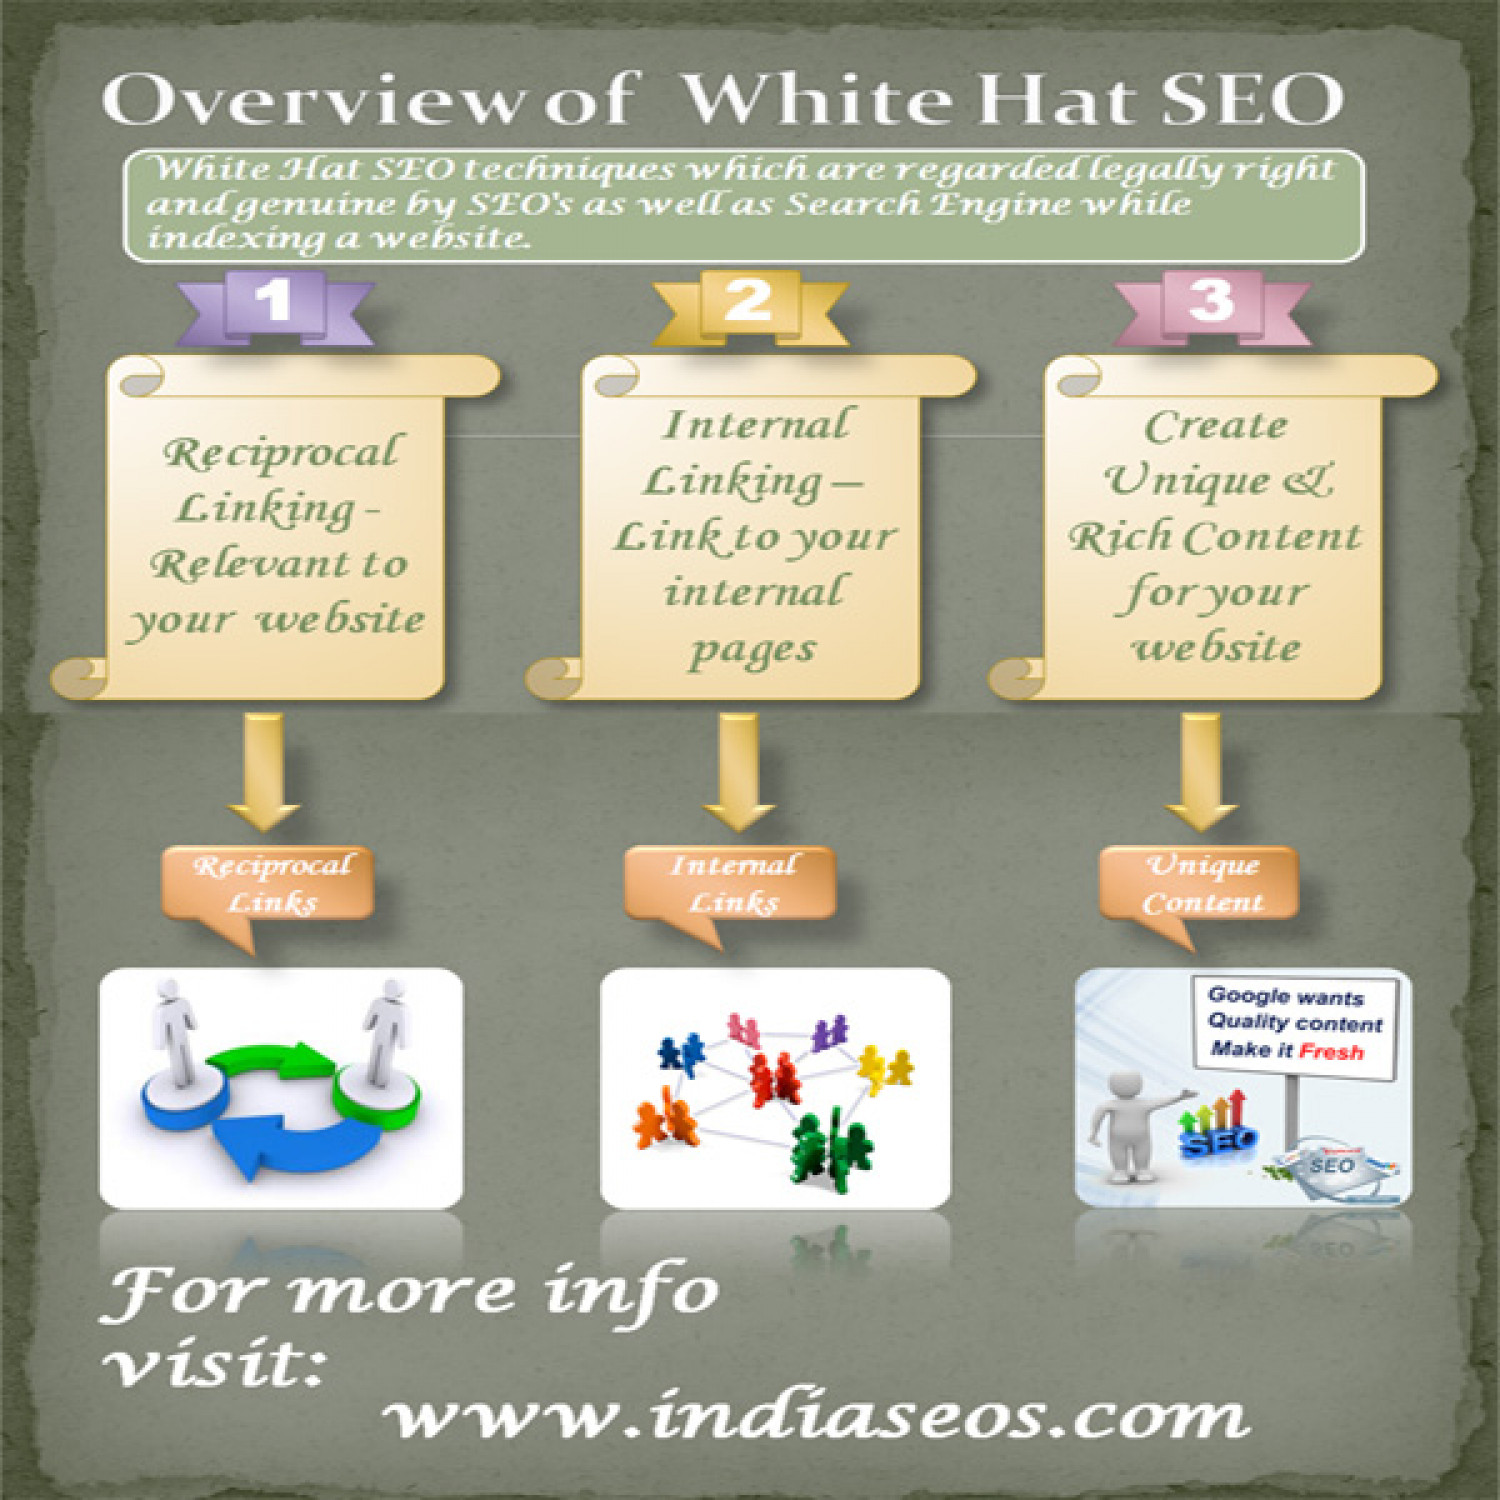 Overview of White Hat SEO Infographic